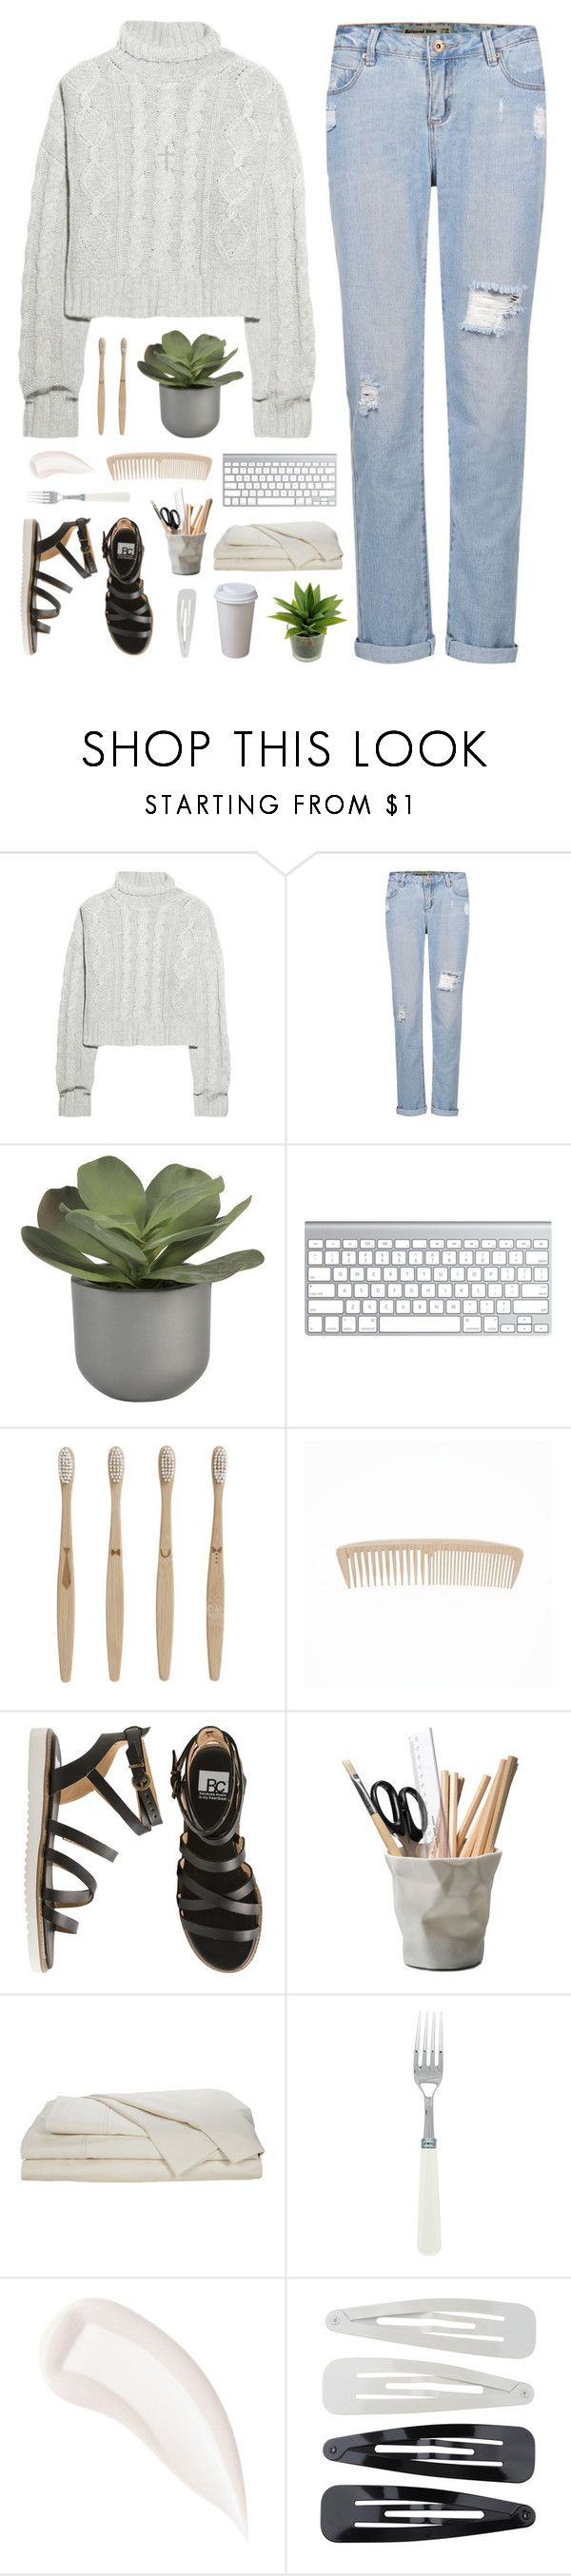 """OUR SOLEMN HOUR"" by penitdown ❤ liked on Polyvore featuring Bamford, Crate and Barrel, ferm LIVING, BC Footwear, ESSEY, By Terry, Forever 21 and Nadri"